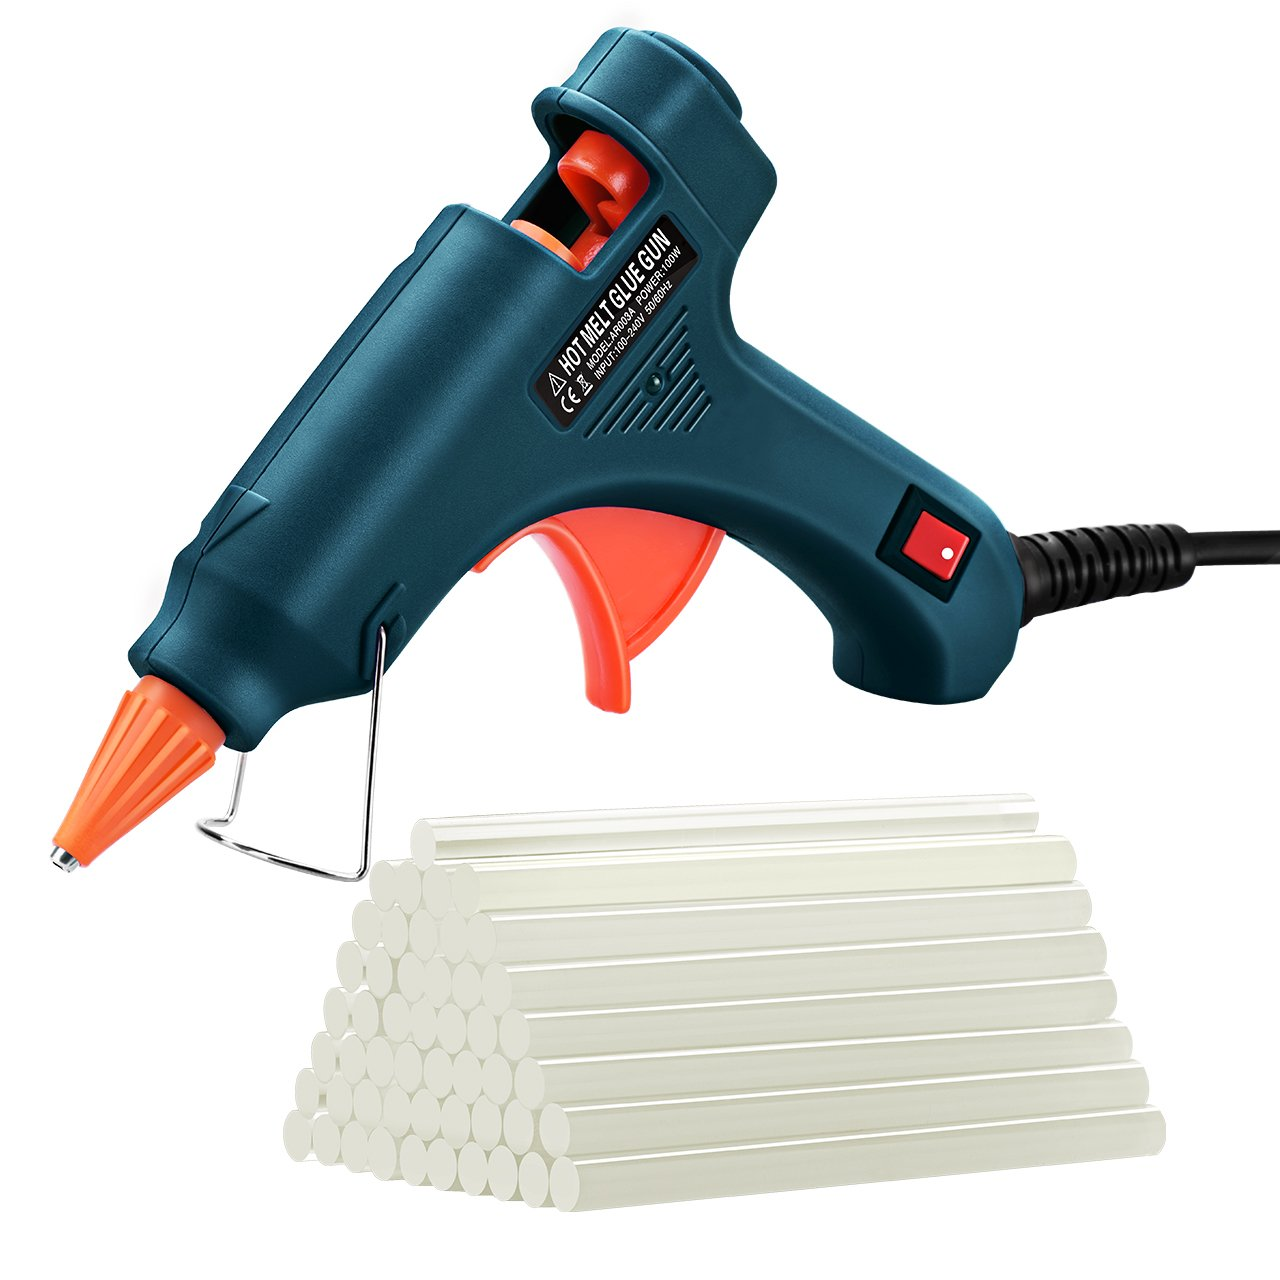 Hot Glue Gun, TOPELEK Mini Heating Hot Melt Glue Gun with 50pcs Melt Glue Sticks, Melting Glue Gun Set for School DIY Arts and Crafts Projects, Home Quick Repairs(20 Watts, Dark Green) Patec